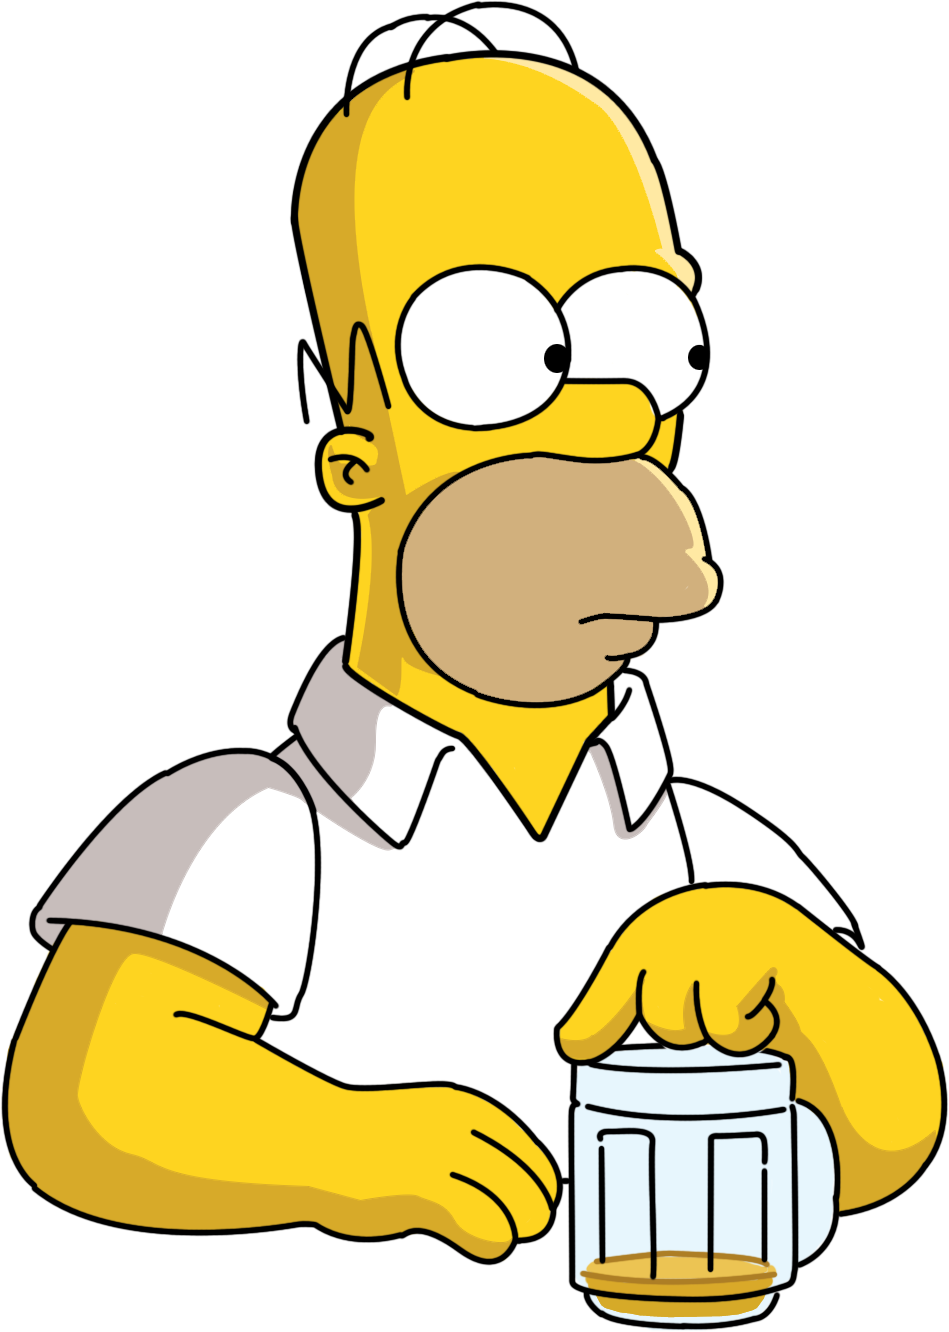 Homer drawing face. Simpsons png image